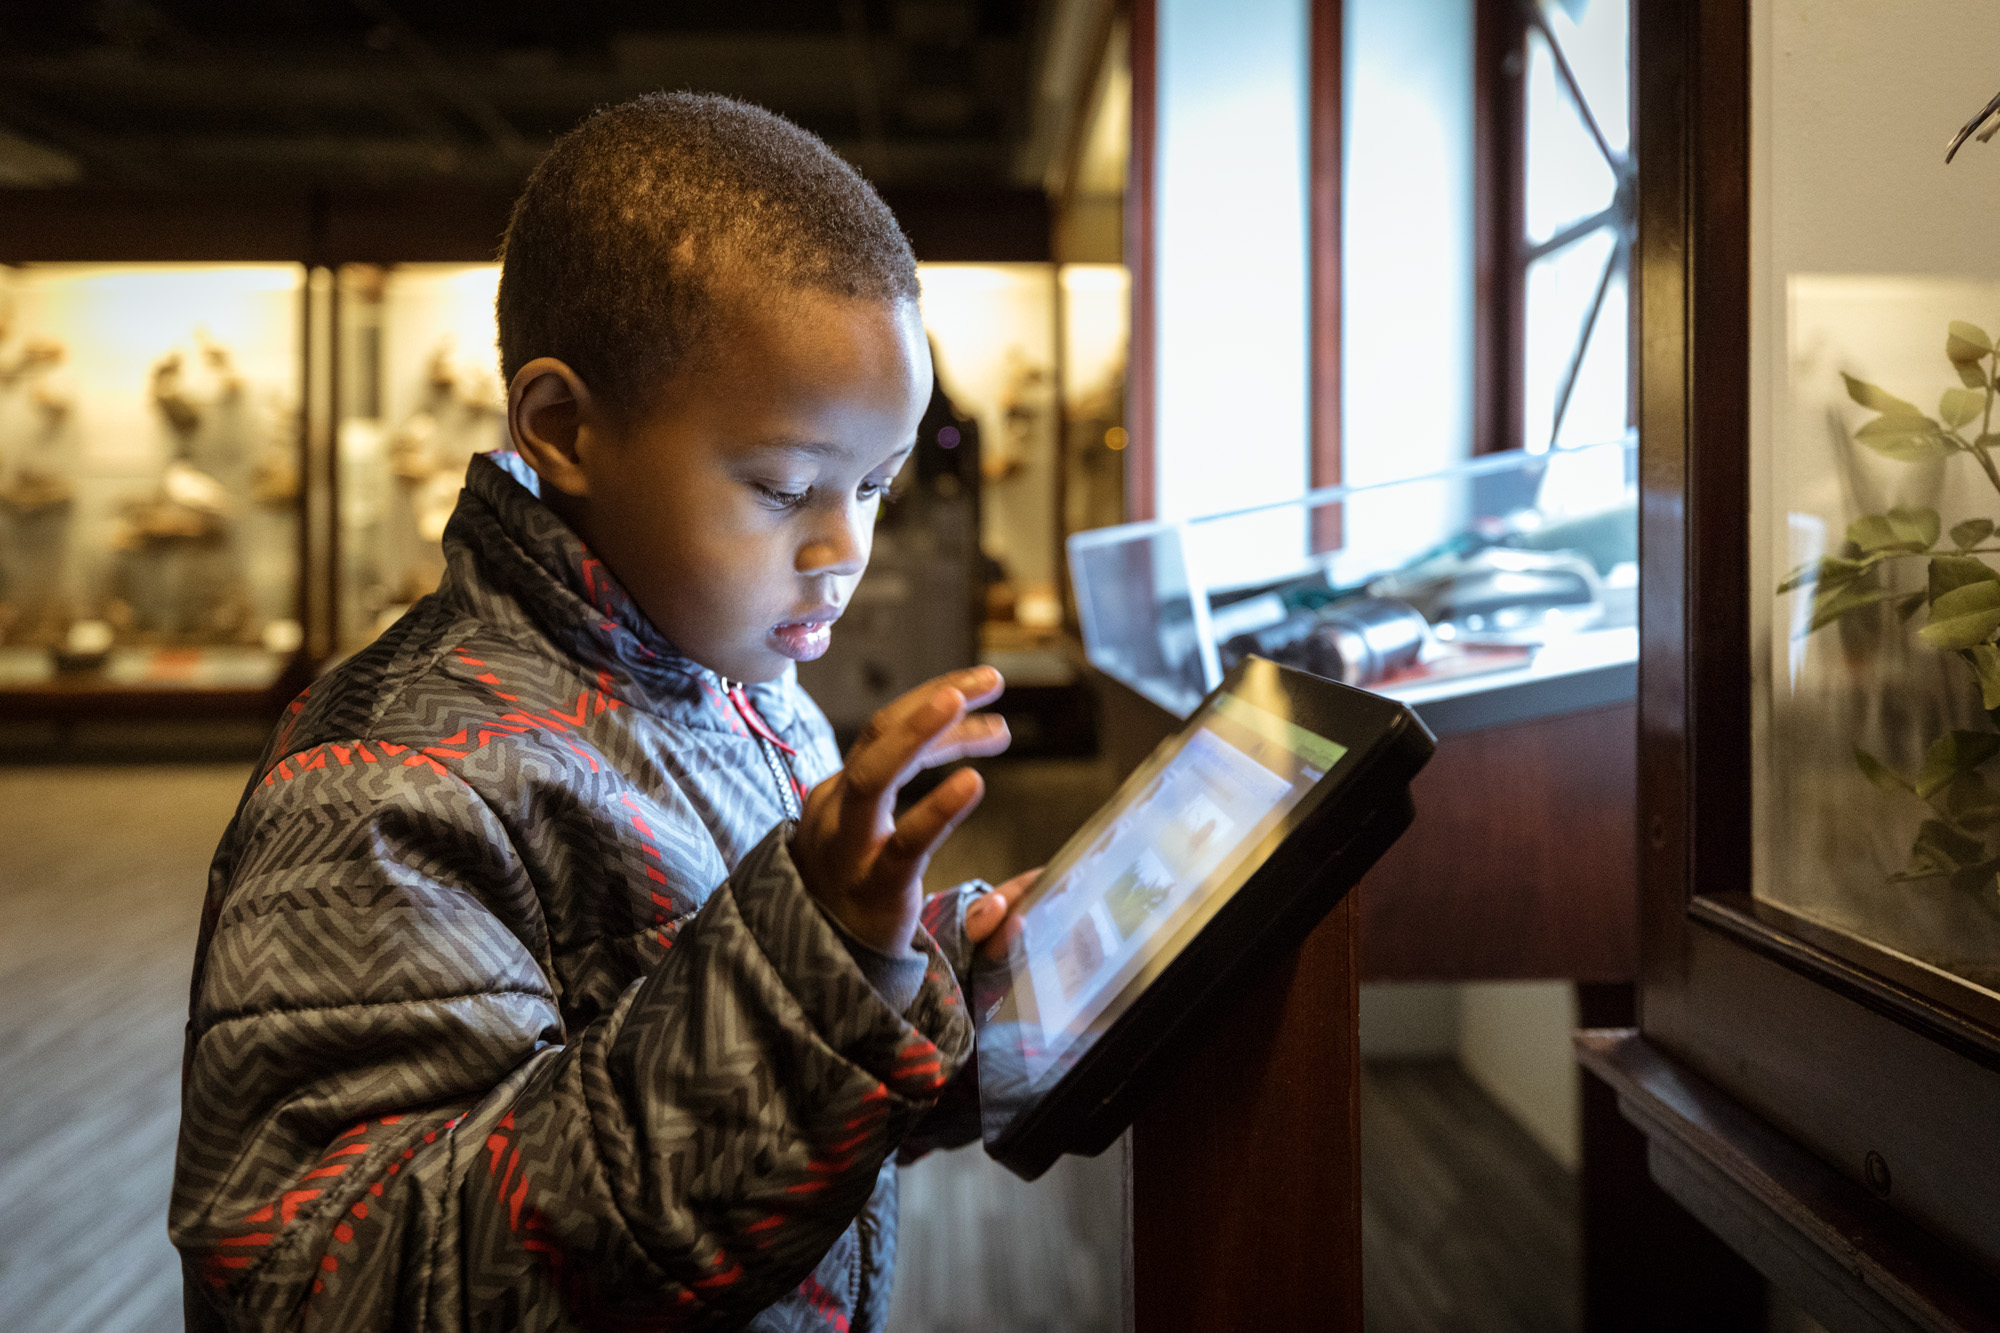 A young boy is touching an interactive display screen that is in front of a diorama, which has only plants visible. The light from the screen illuminates his face.